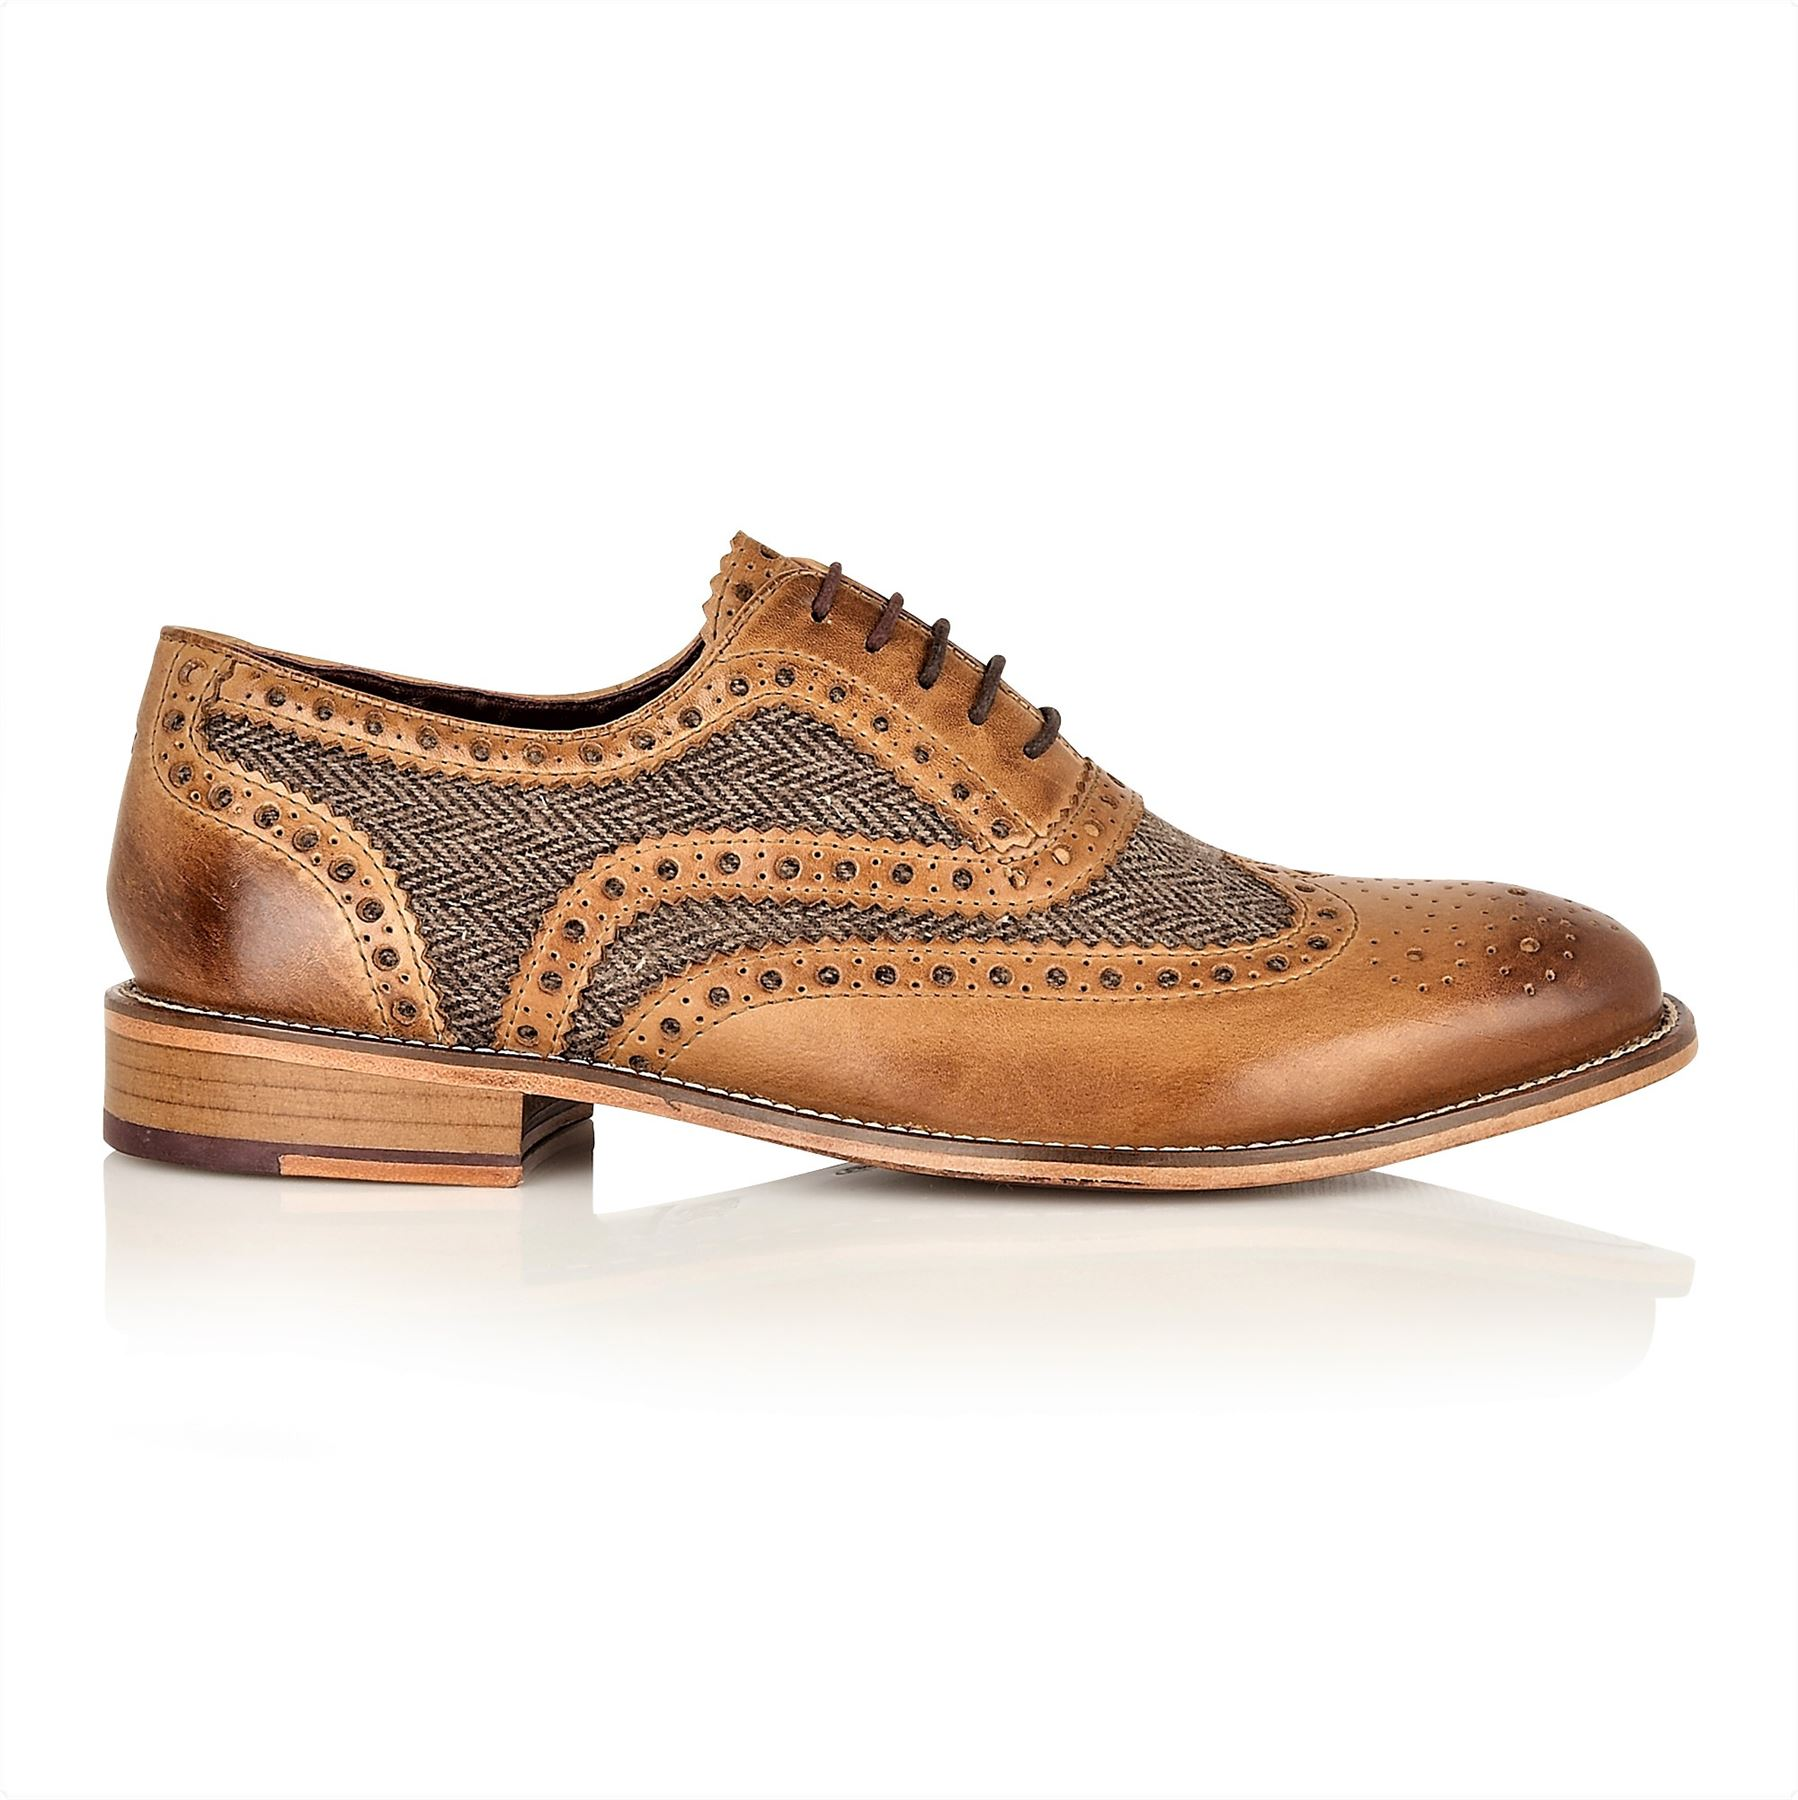 London Brogues Watson Leather Sole Mens